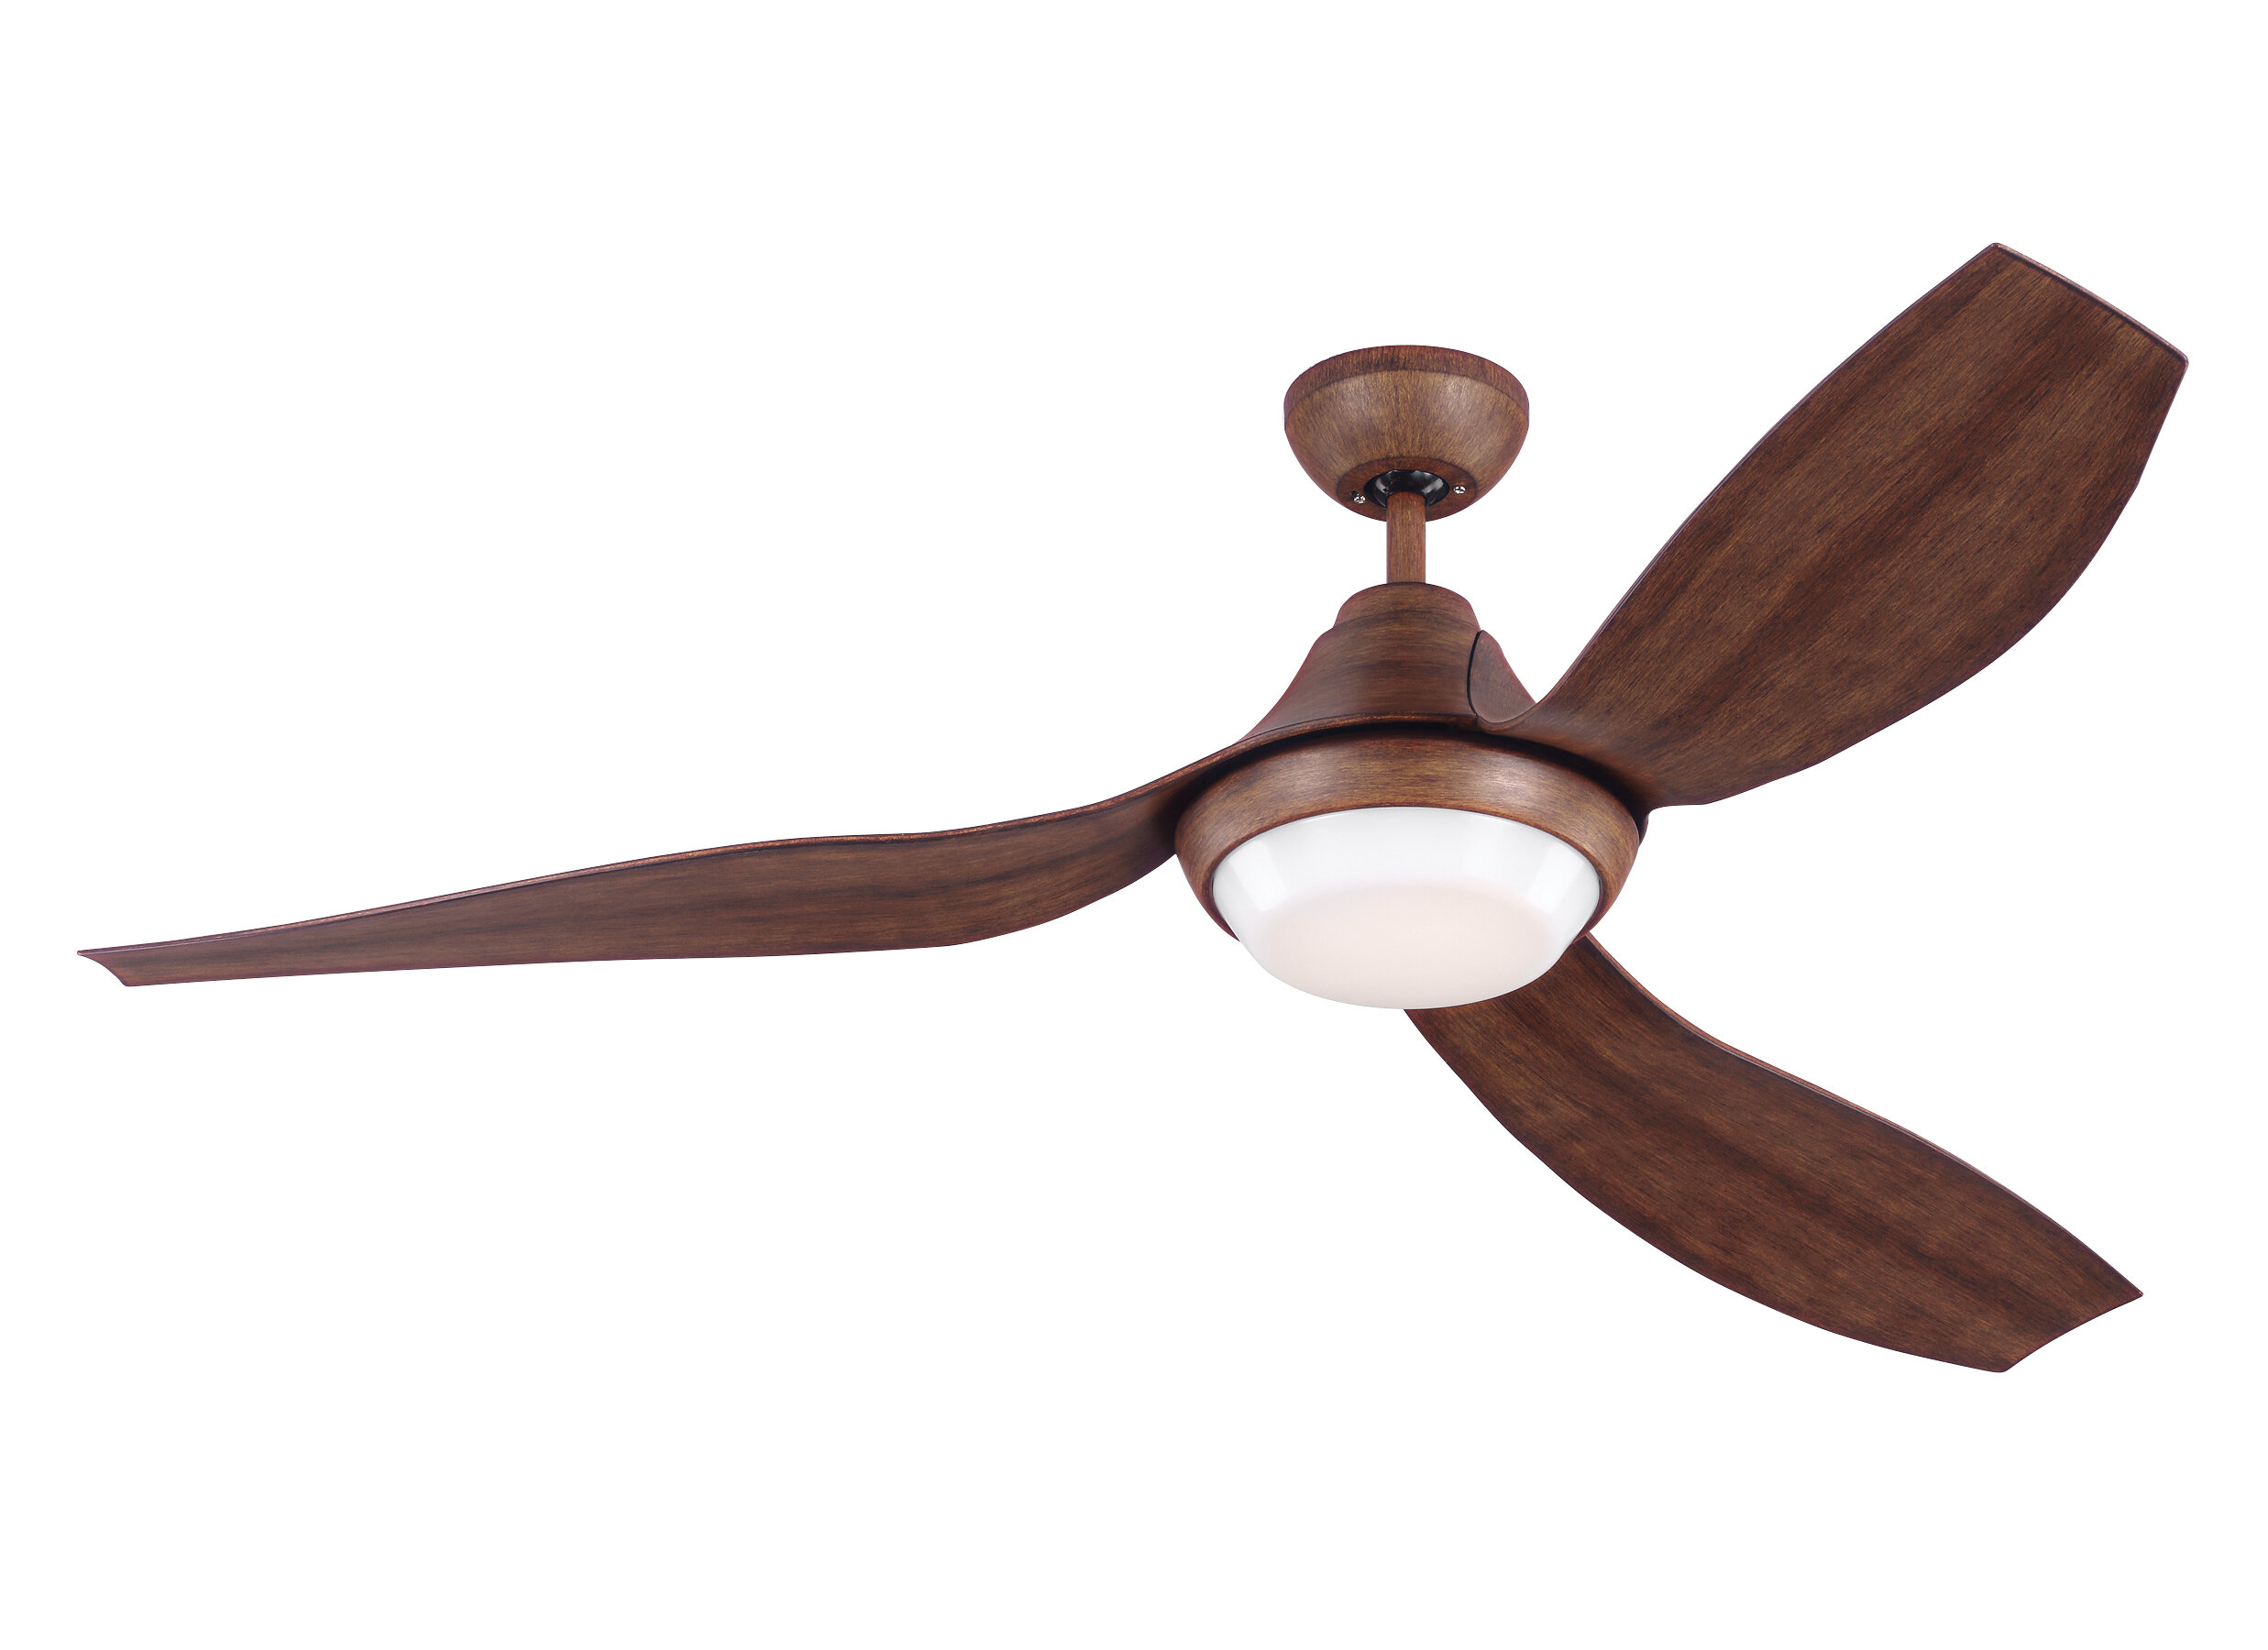 Monte Carlo Fan Company 56 3 Blade Led Propeller Ceiling Fan With Remote Control And Light Kit Included Reviews Perigold